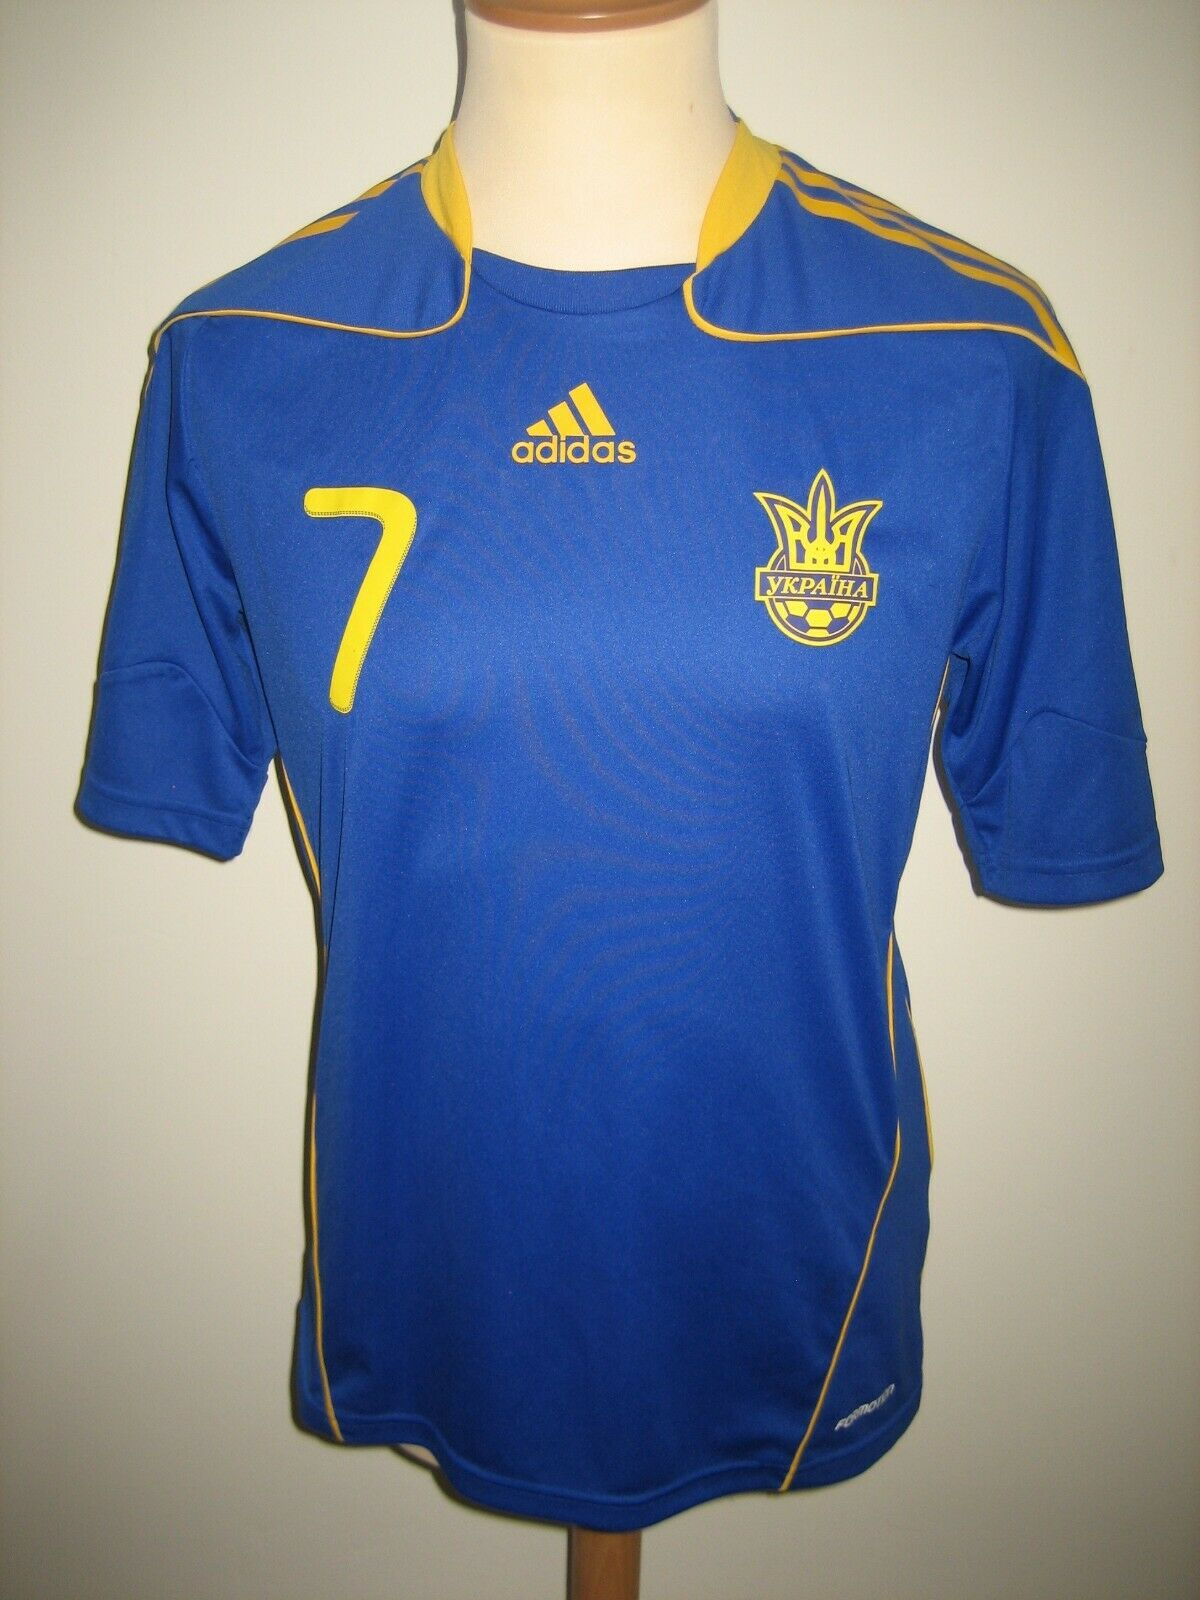 Ukraine MATCH WORN Shevchenko away football shirt soccer jersey maillot Dimensione M